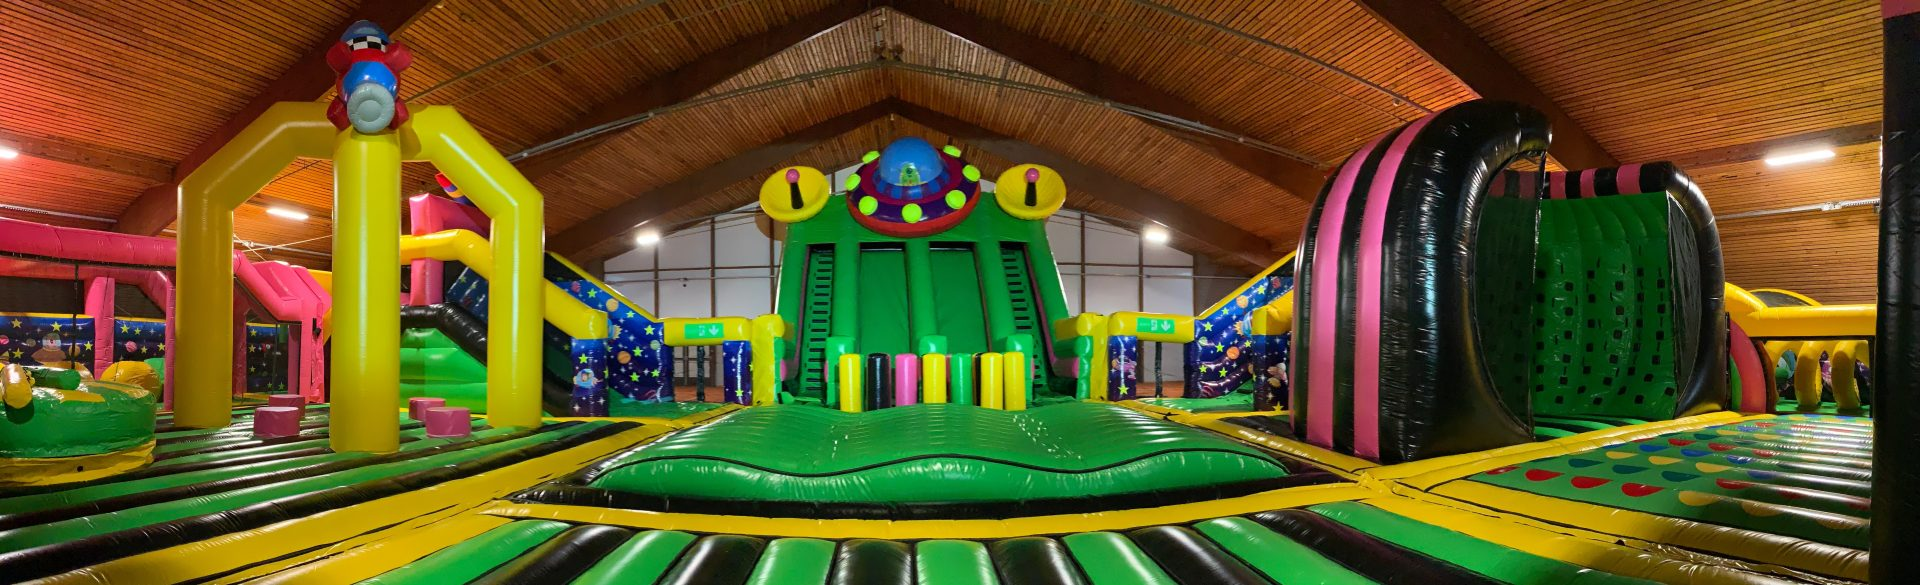 Inflatable indoor park